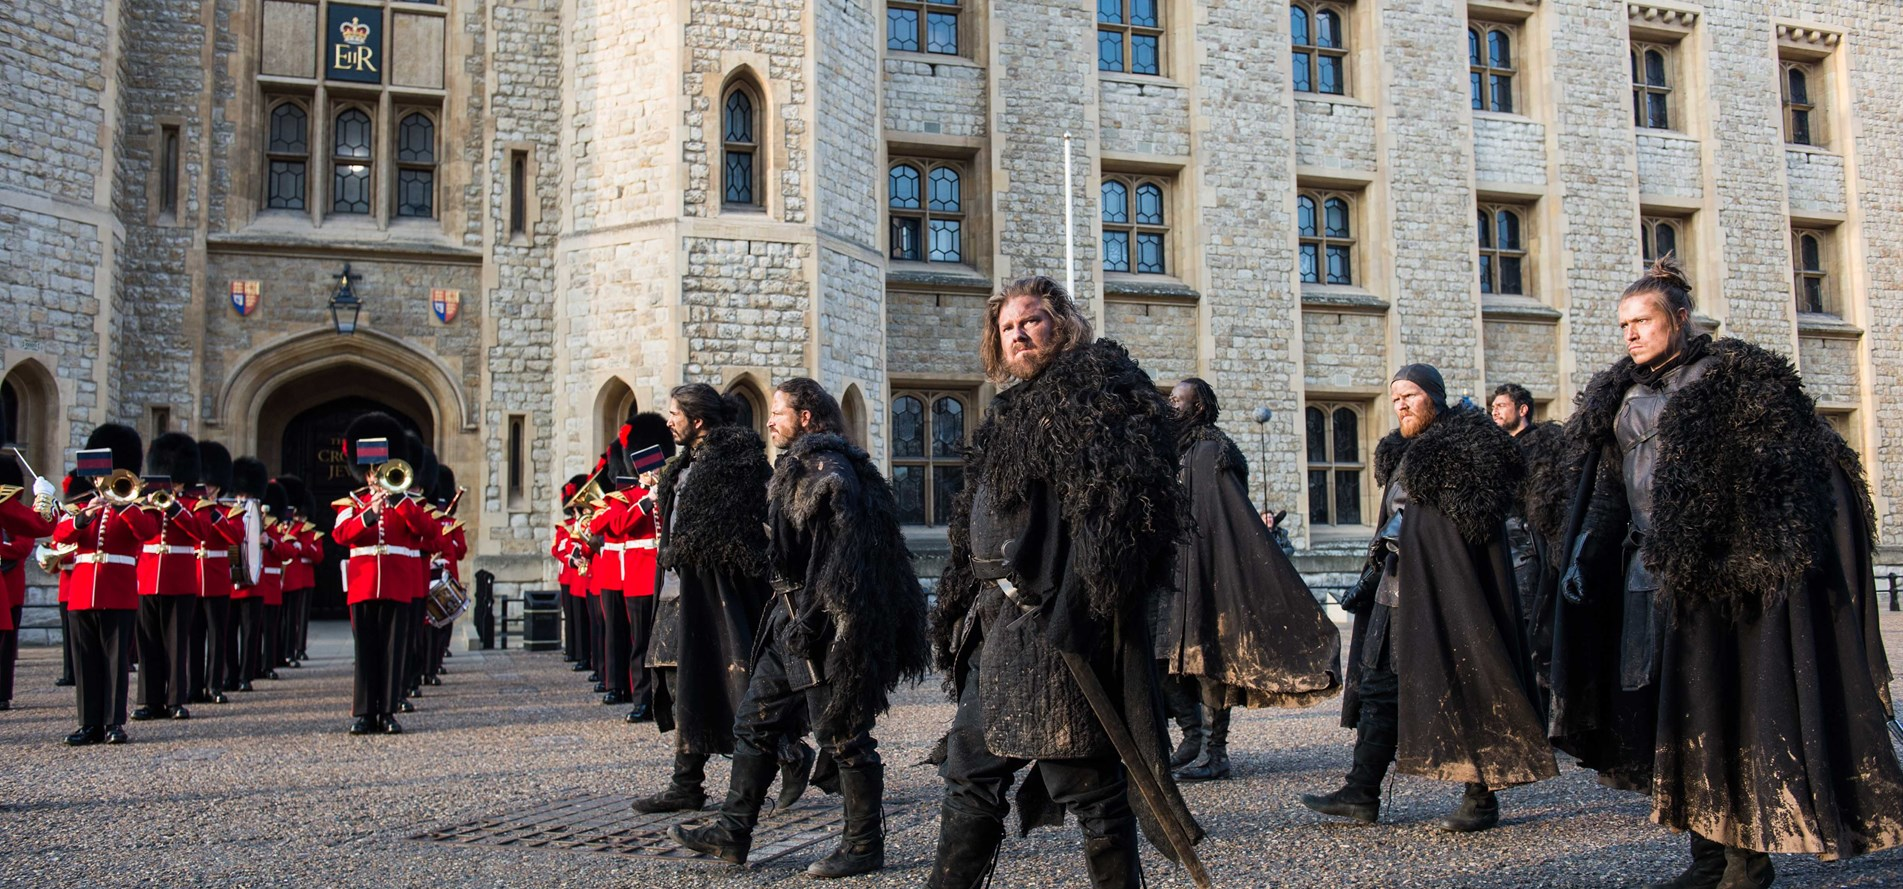 APOLOND-2019-033-0030-Game Of Thrones Tower Of London-PR.JPG